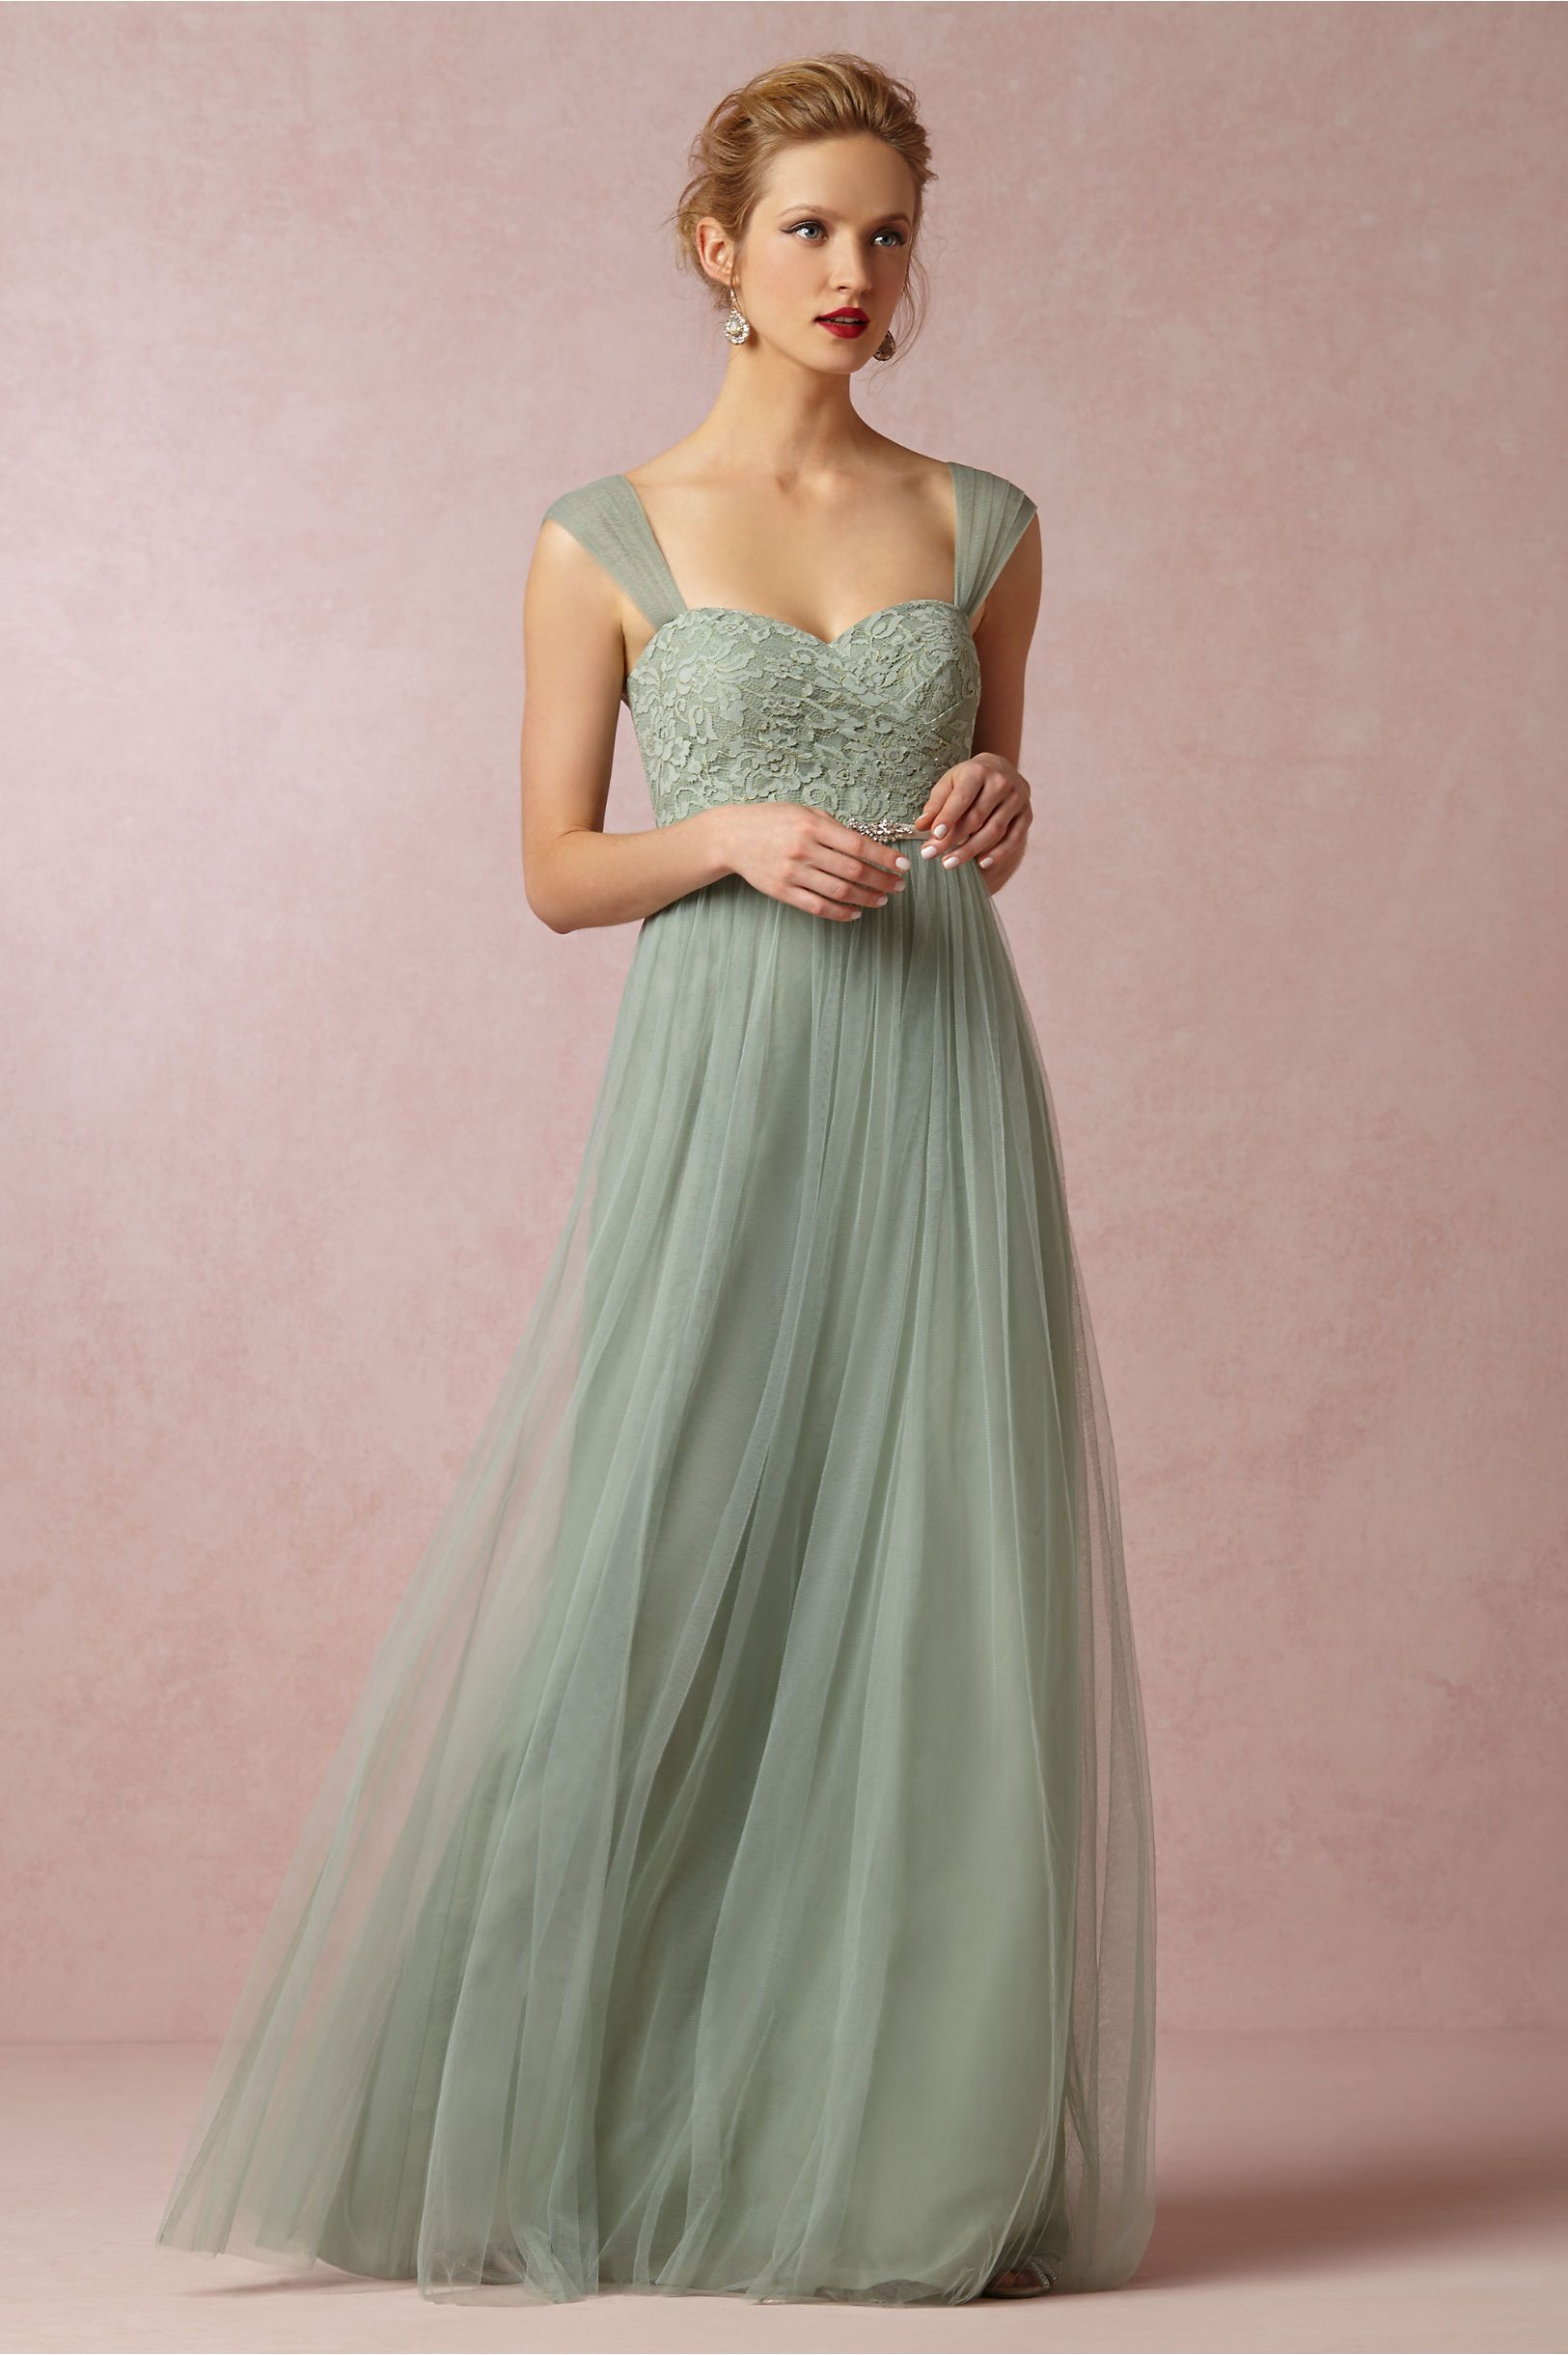 Juliette bridesmaids dress in sea glass by jenny yoo exclusively juliette bridesmaids dress in sea glass by jenny yoo exclusively for bhldn ombrellifo Choice Image